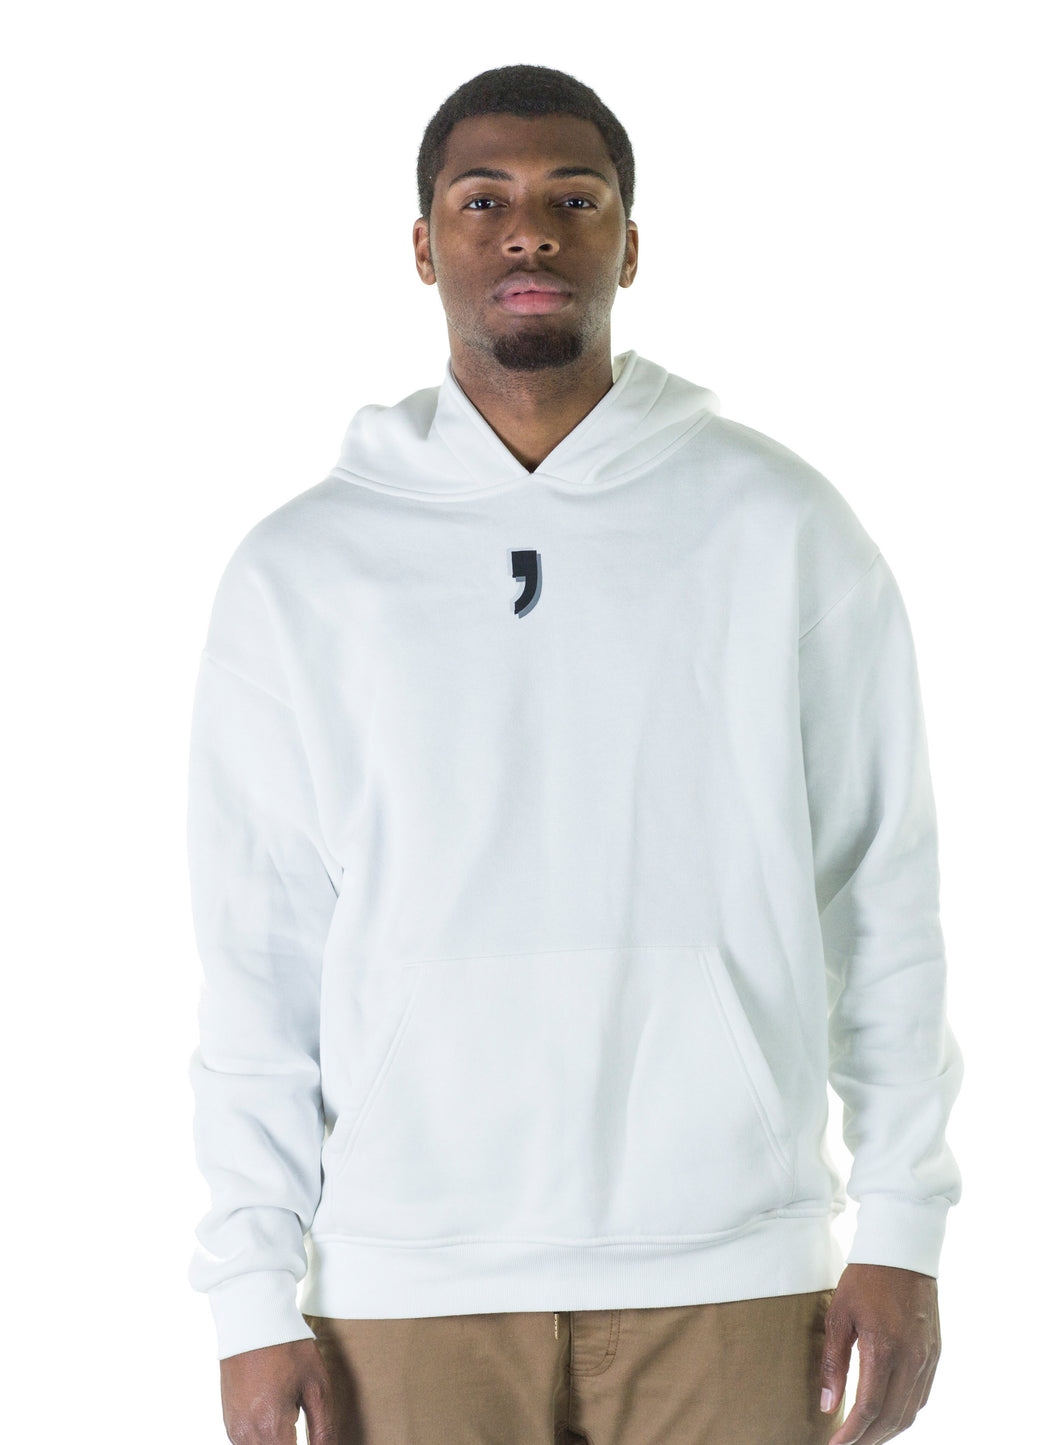 Hoodie on Man White